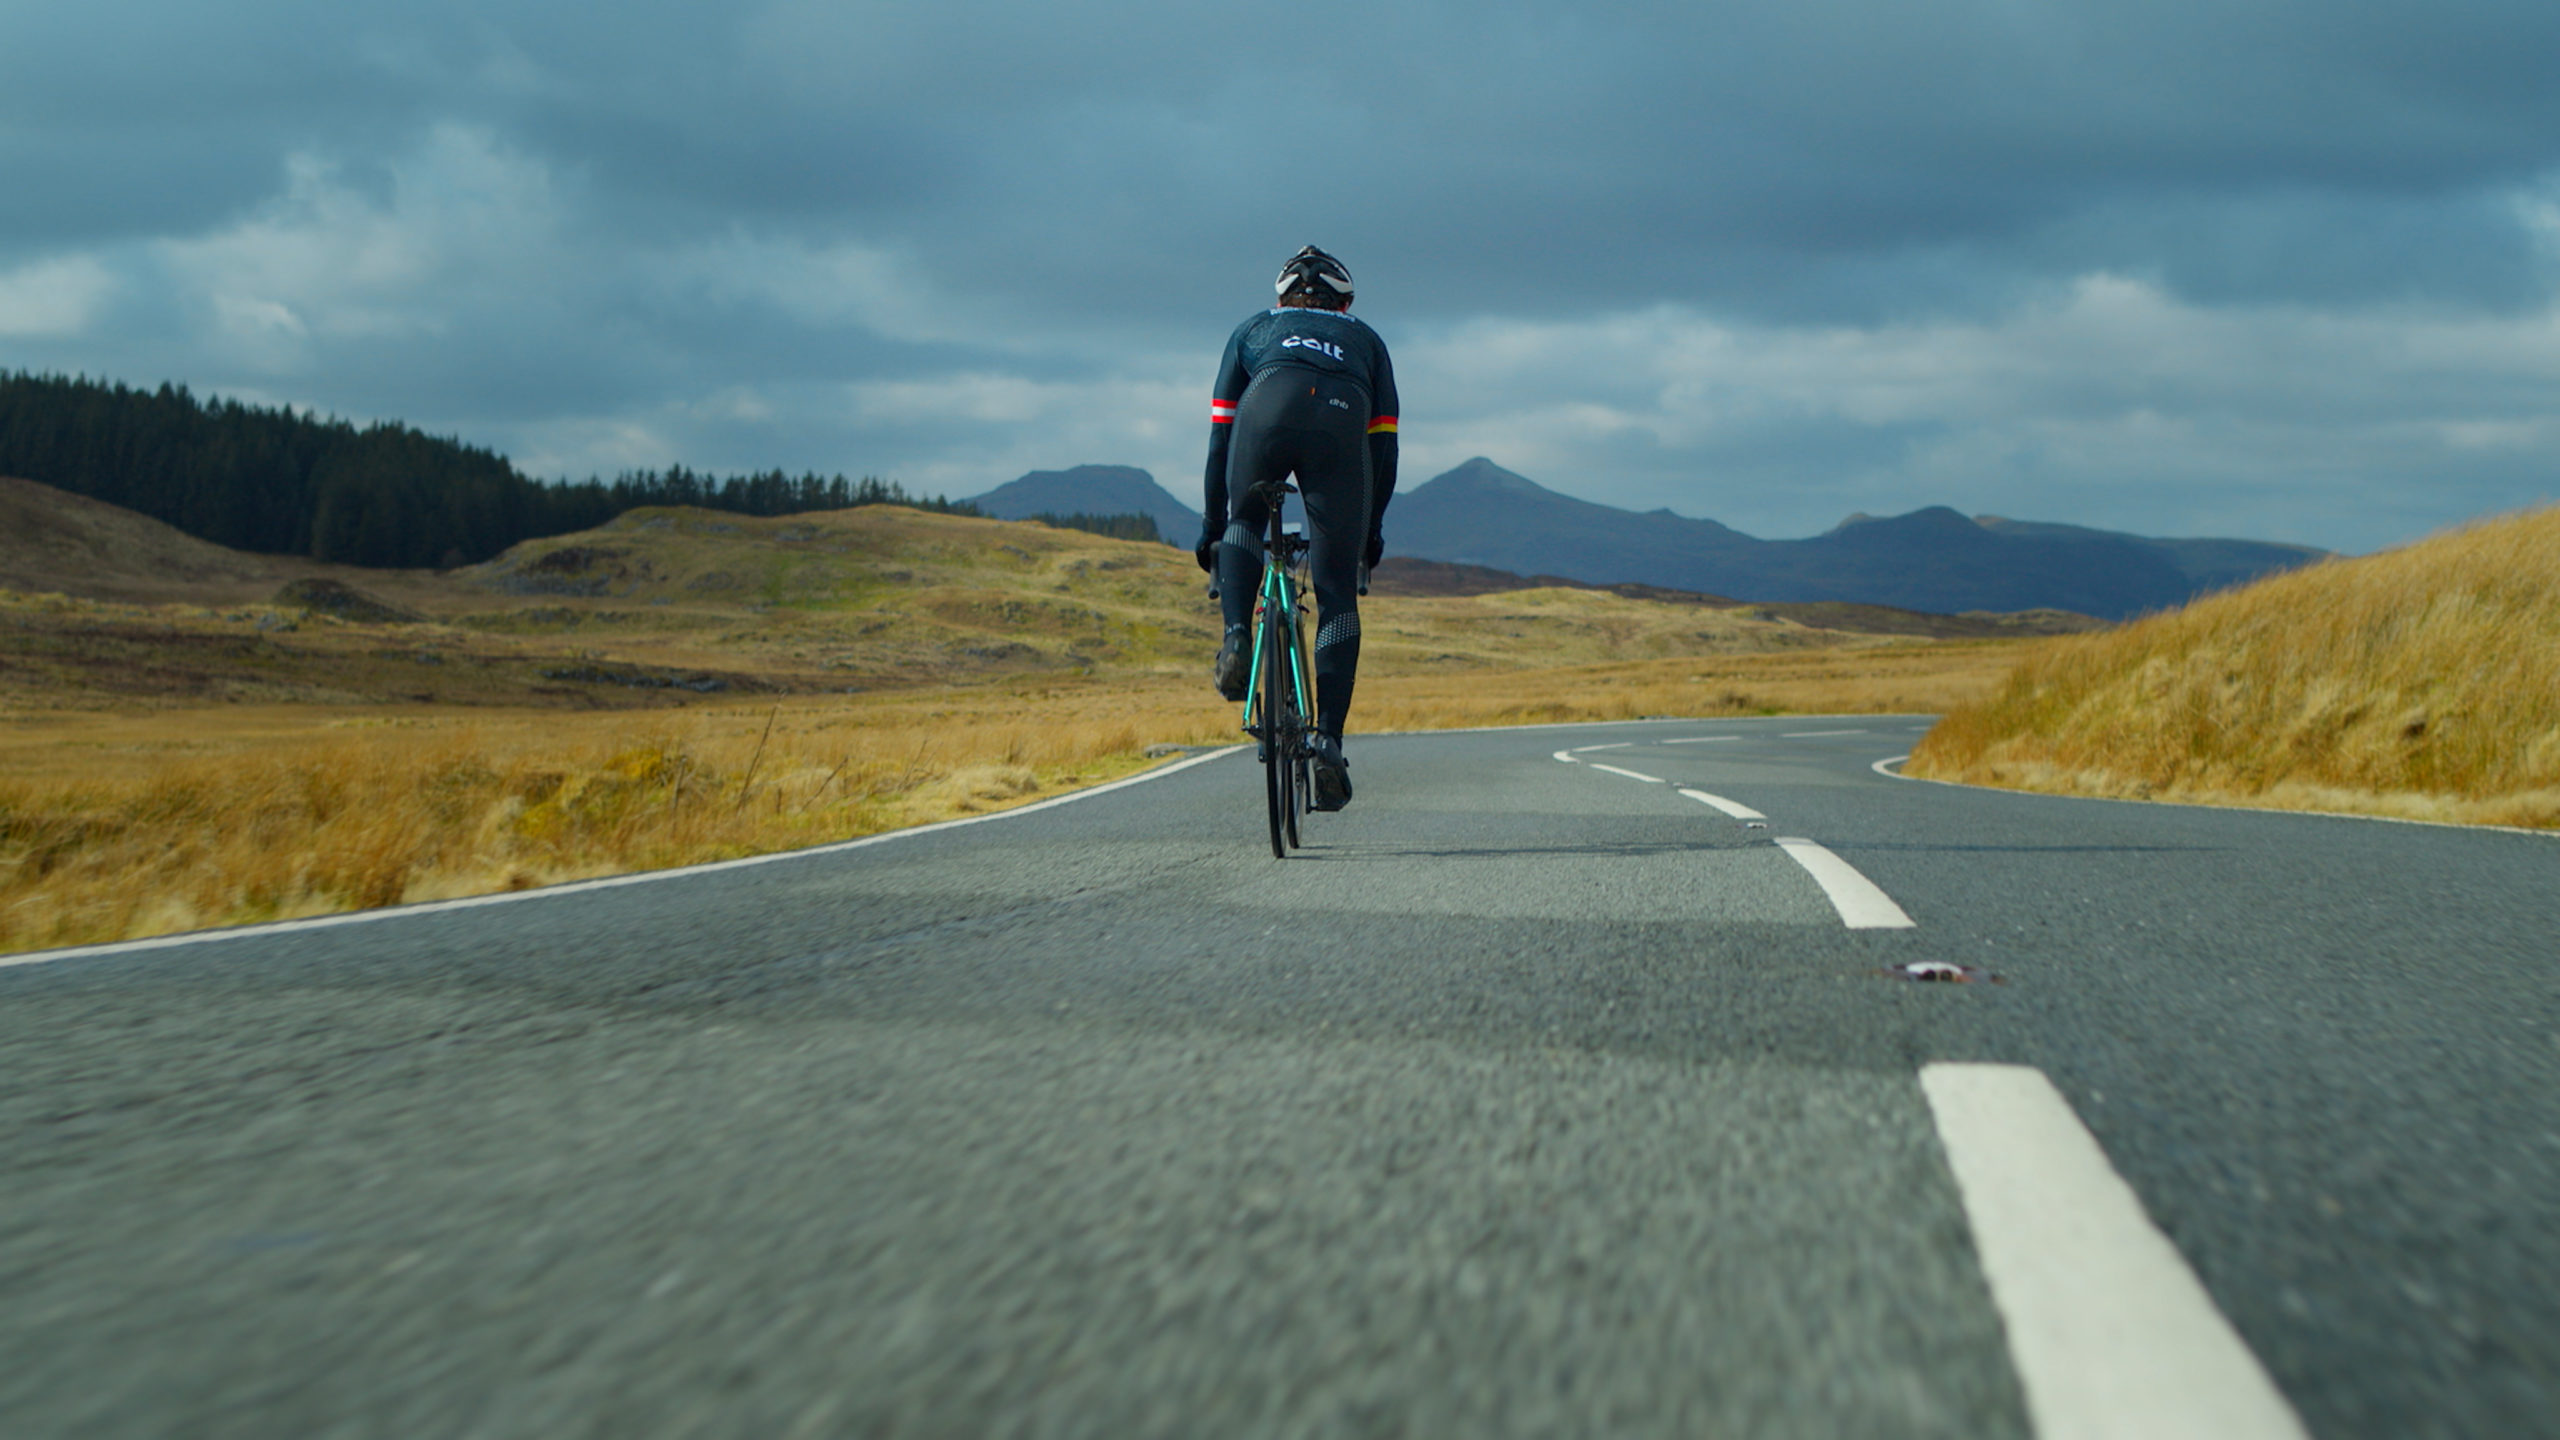 the back of a man cycling on an empty road